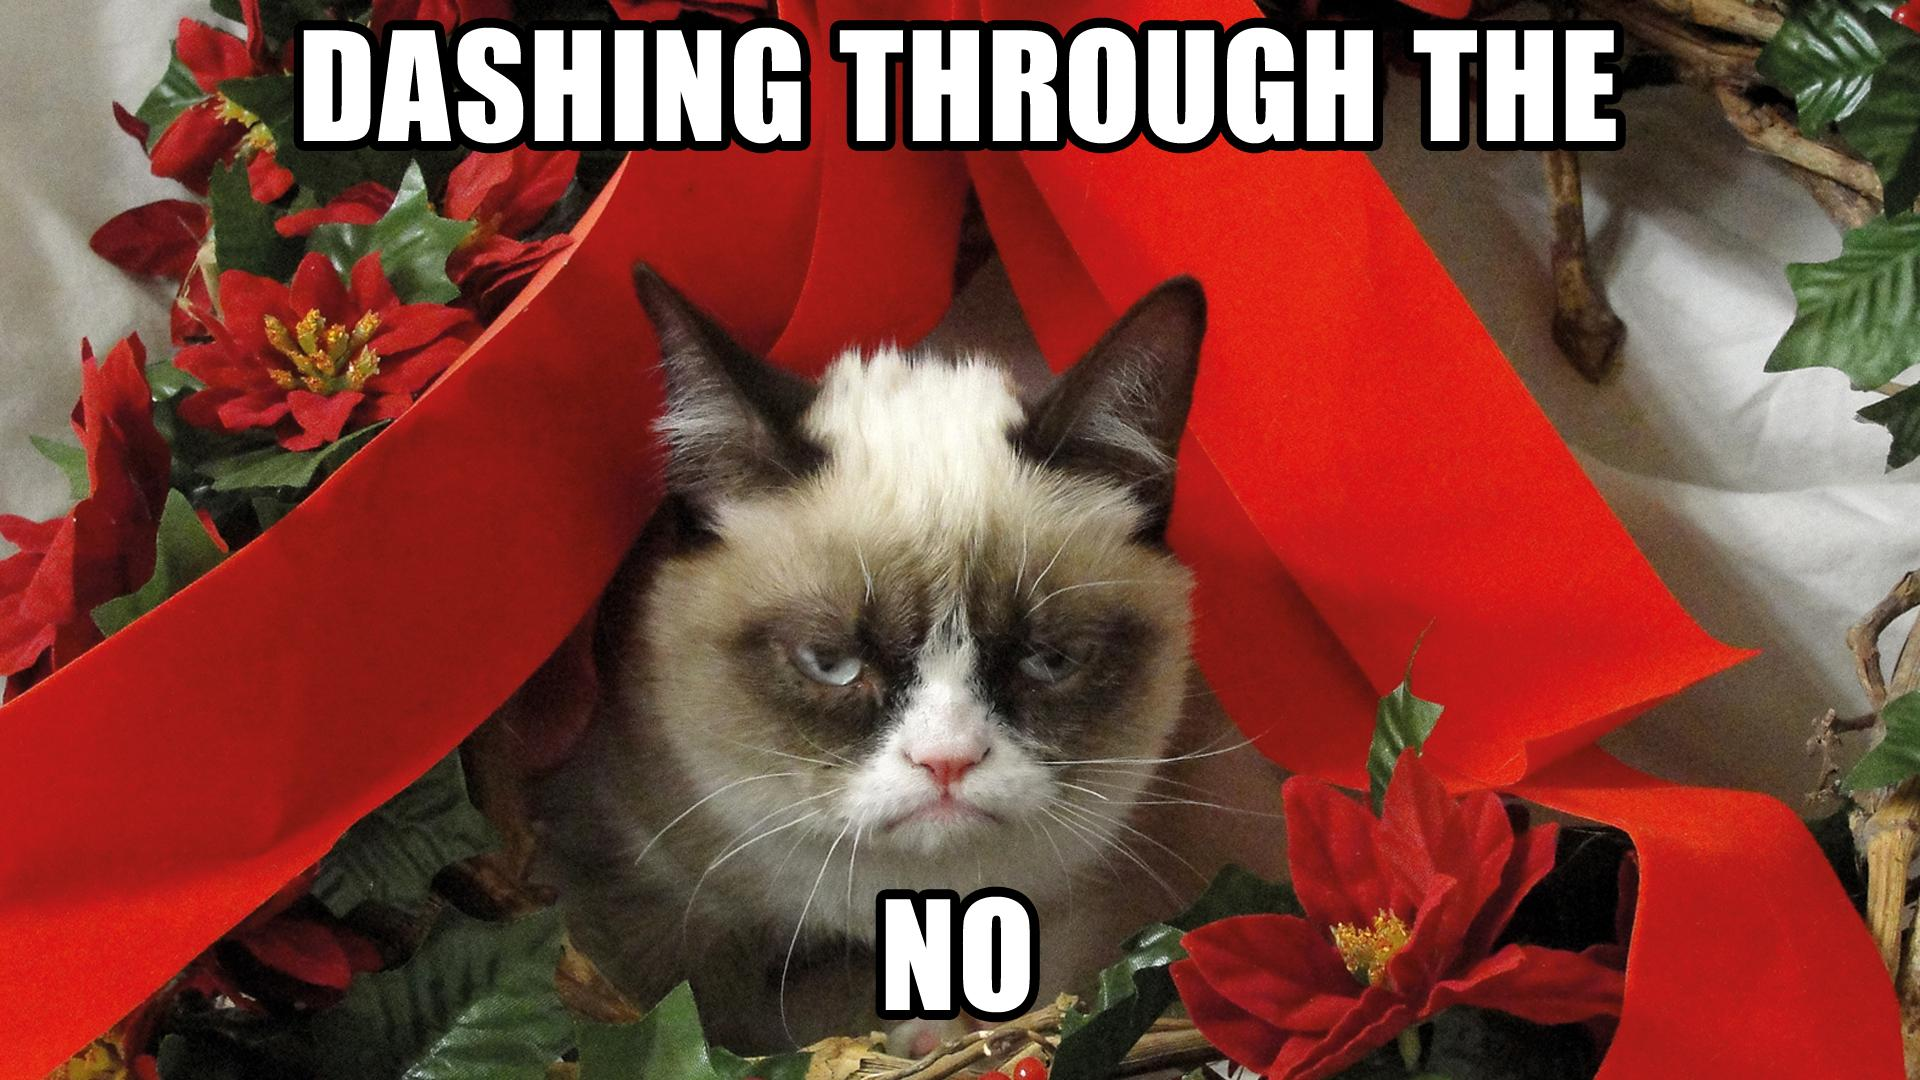 Grumpy Cat Meme Pictures humor funny cats christmas 1920x1080 ...